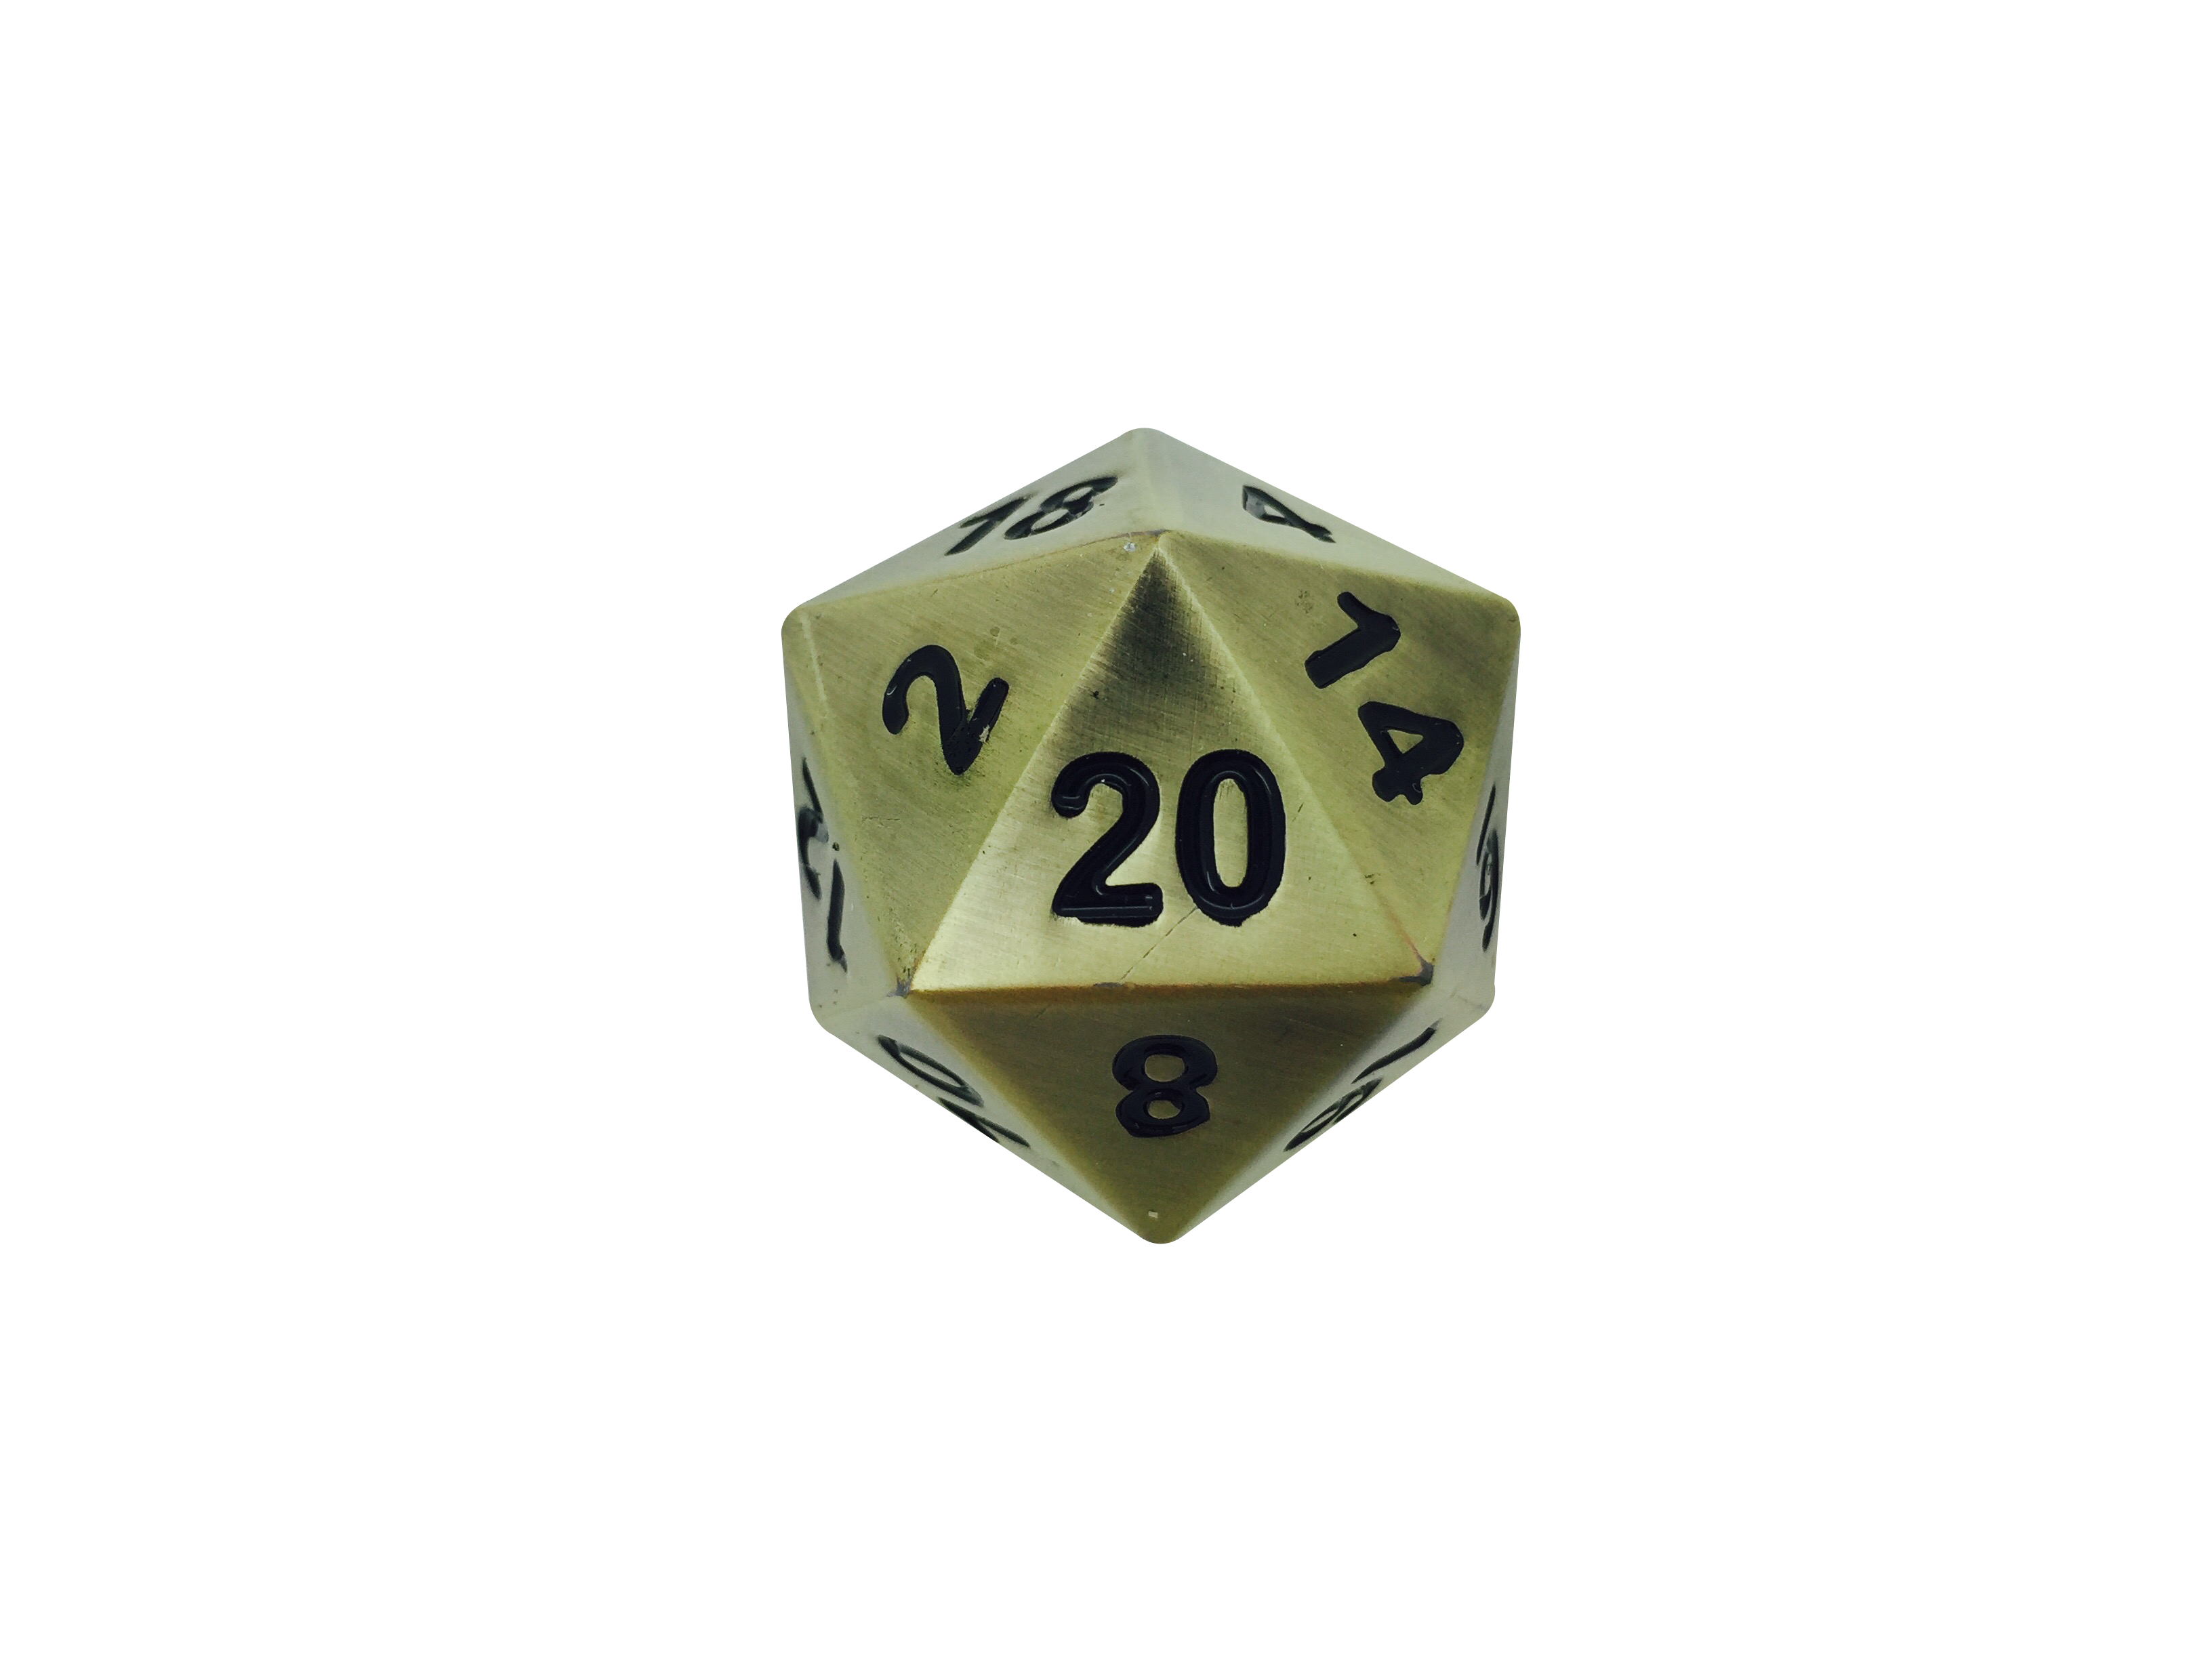 Pin On Metal Dice Rpg Spindown Countdown Speciality I am waiting to hear which two and then we'll contact those individuals. pin on metal dice rpg spindown